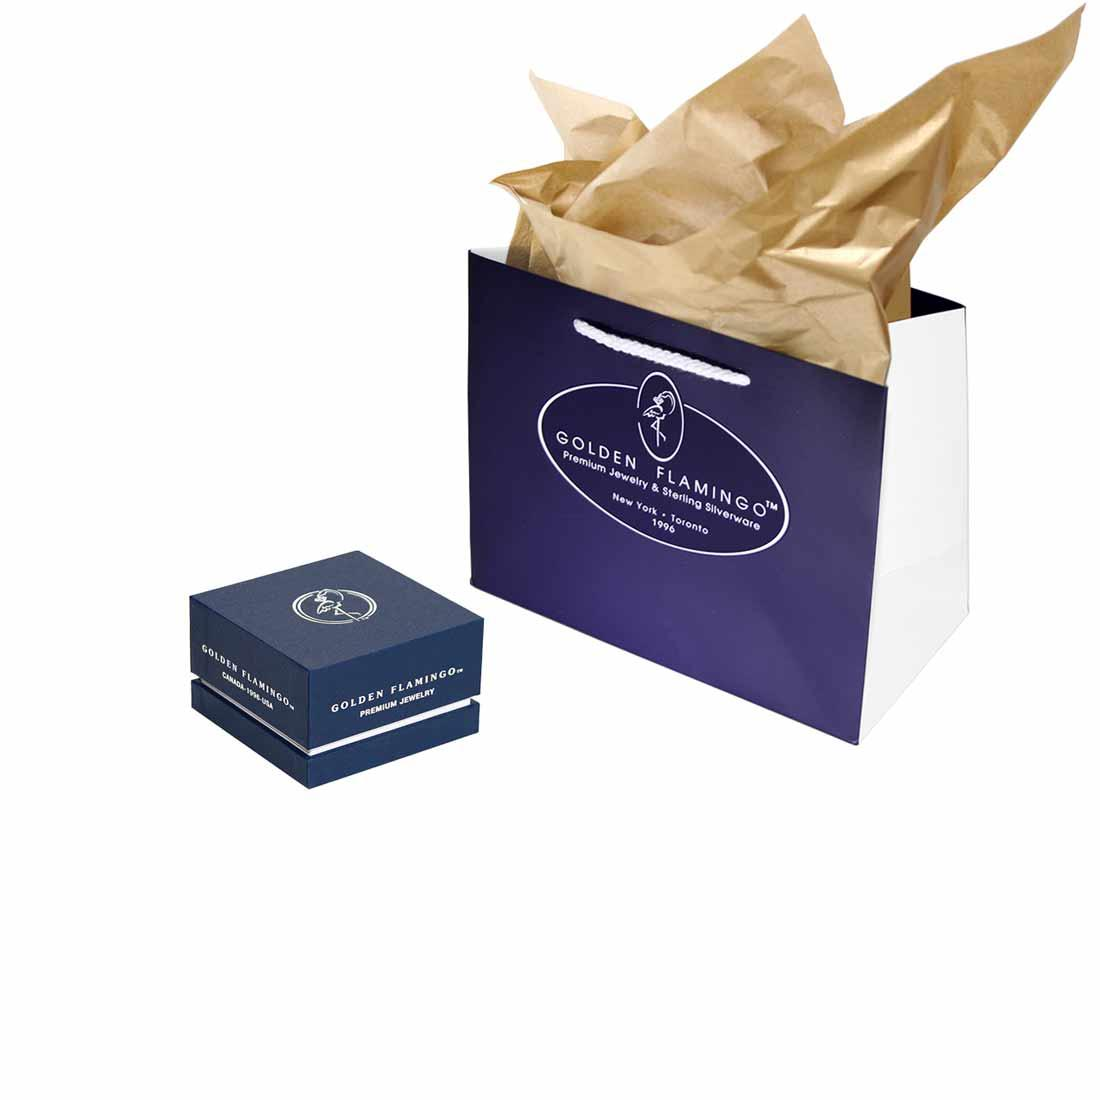 Deluxe Jewelry Gift Box by Golden Flamingo